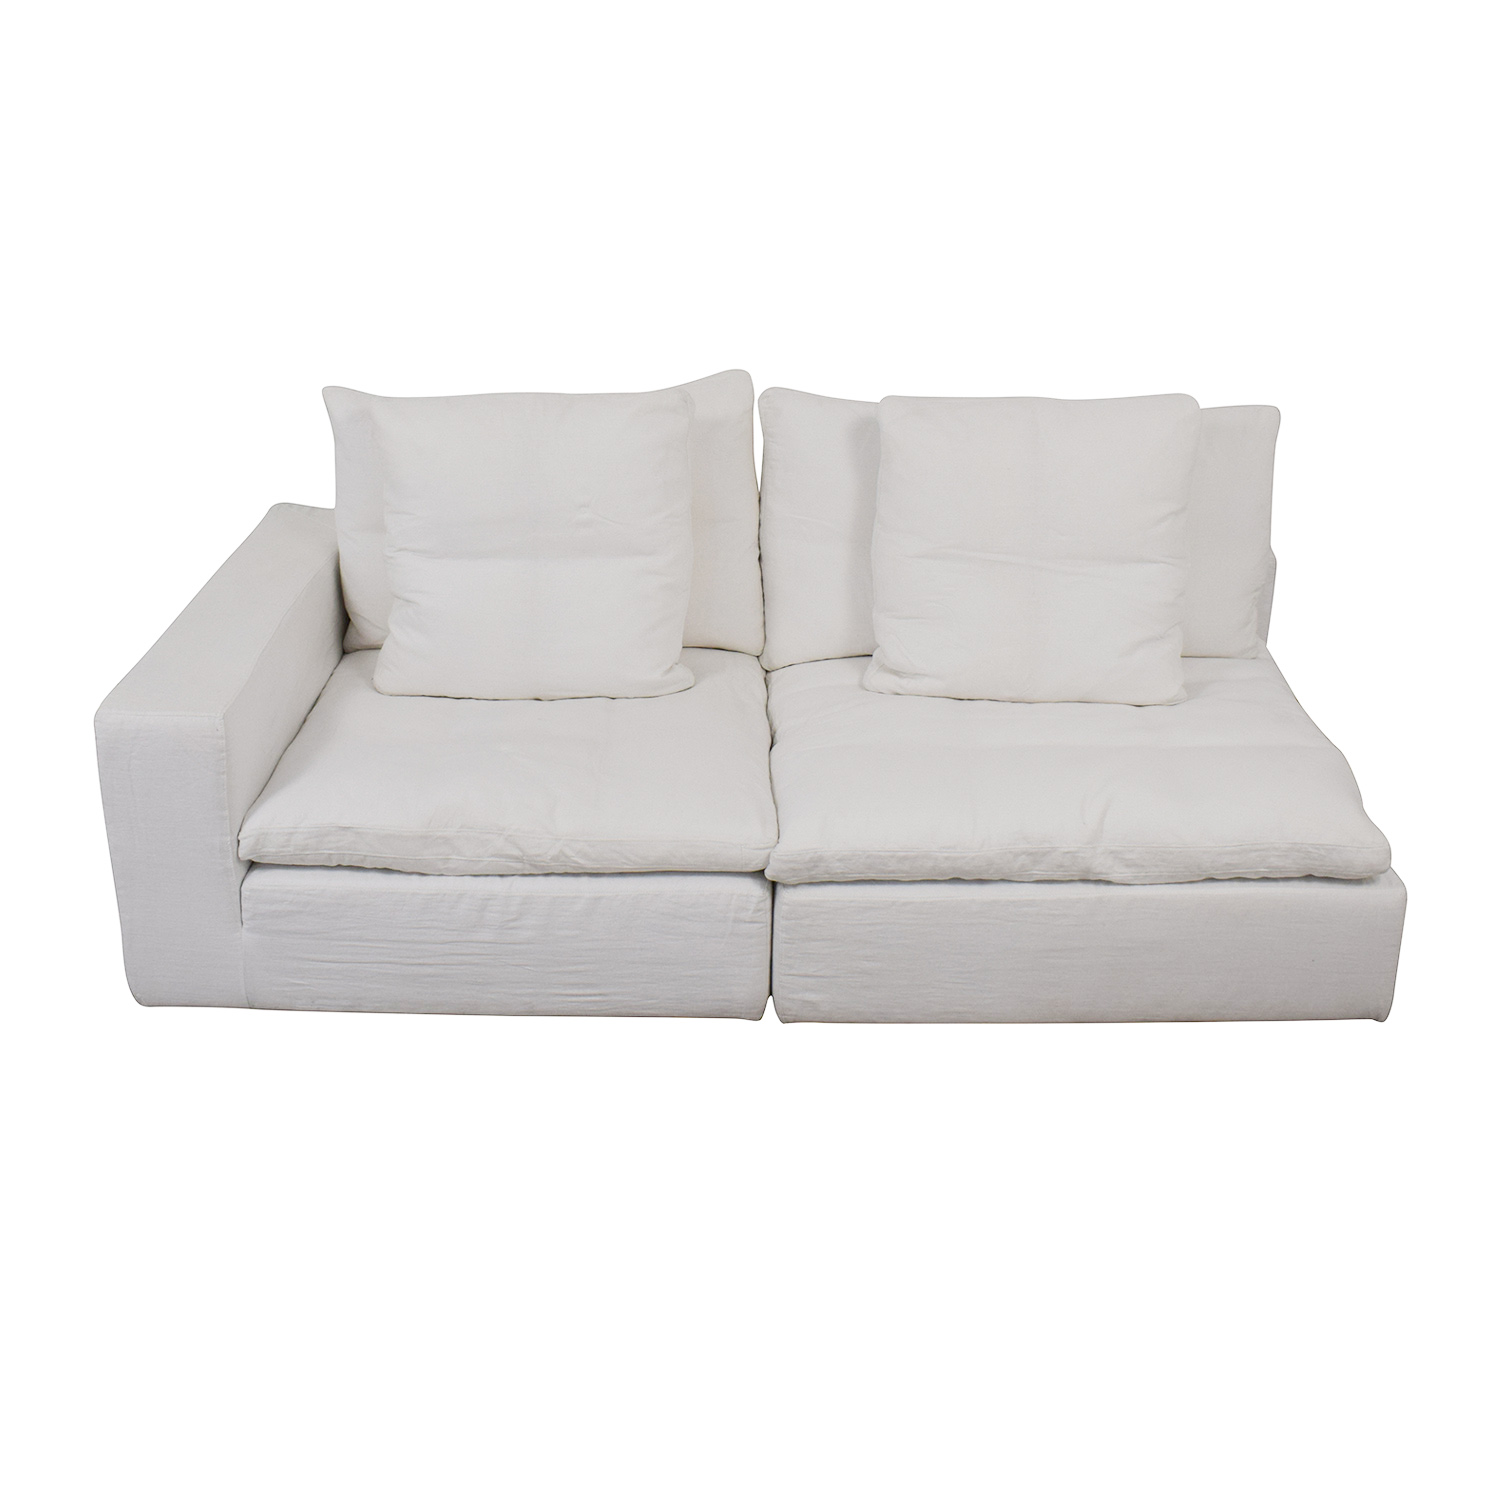 shop Restoration Hardware Cloud Modular Corner Chair and Armless Chair Restoration Hardware Sectionals